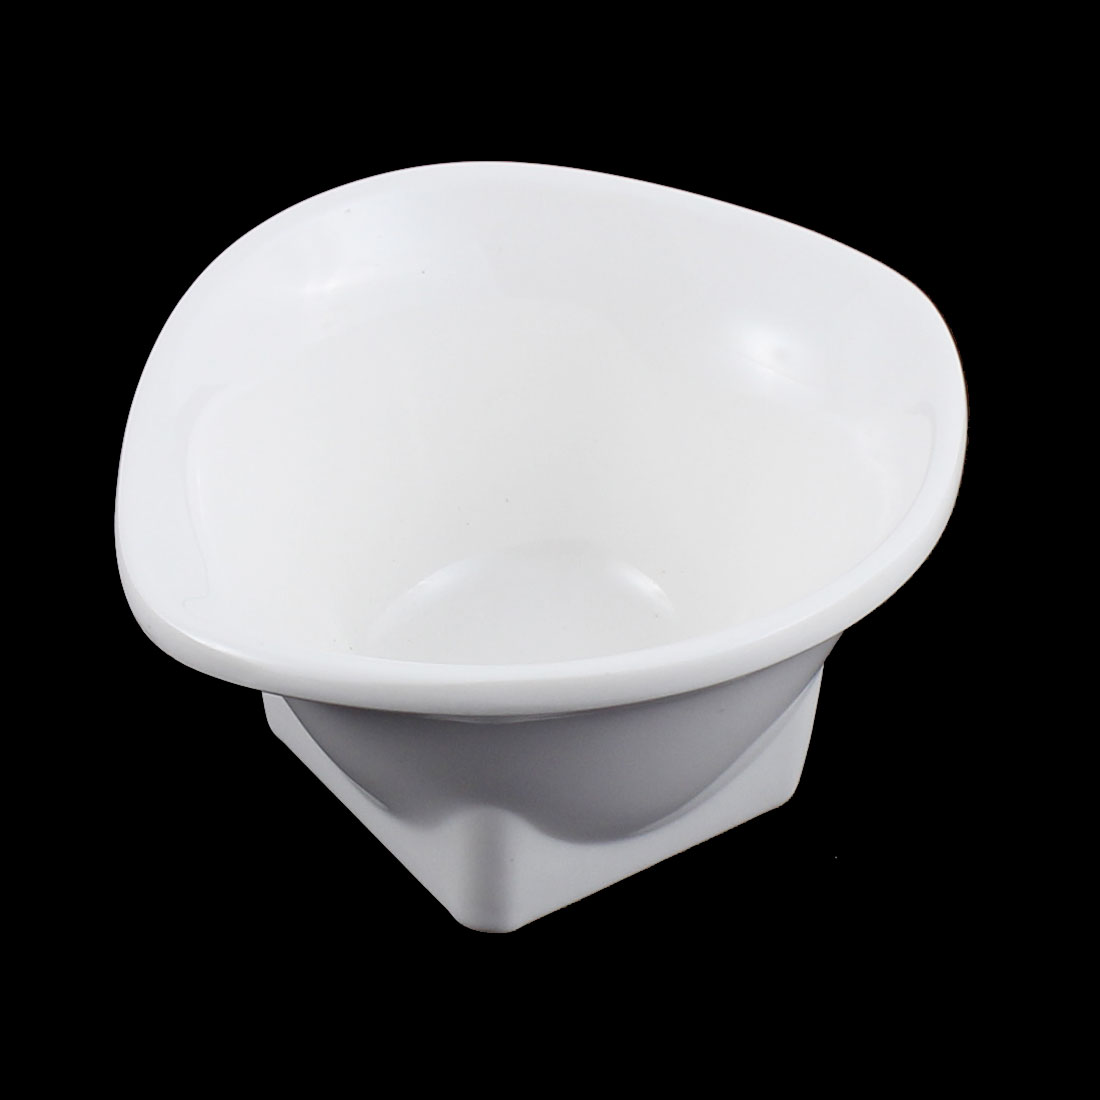 Sushi Soy Sauce Dipping Dish Plate 87 x 76 x 45mm White